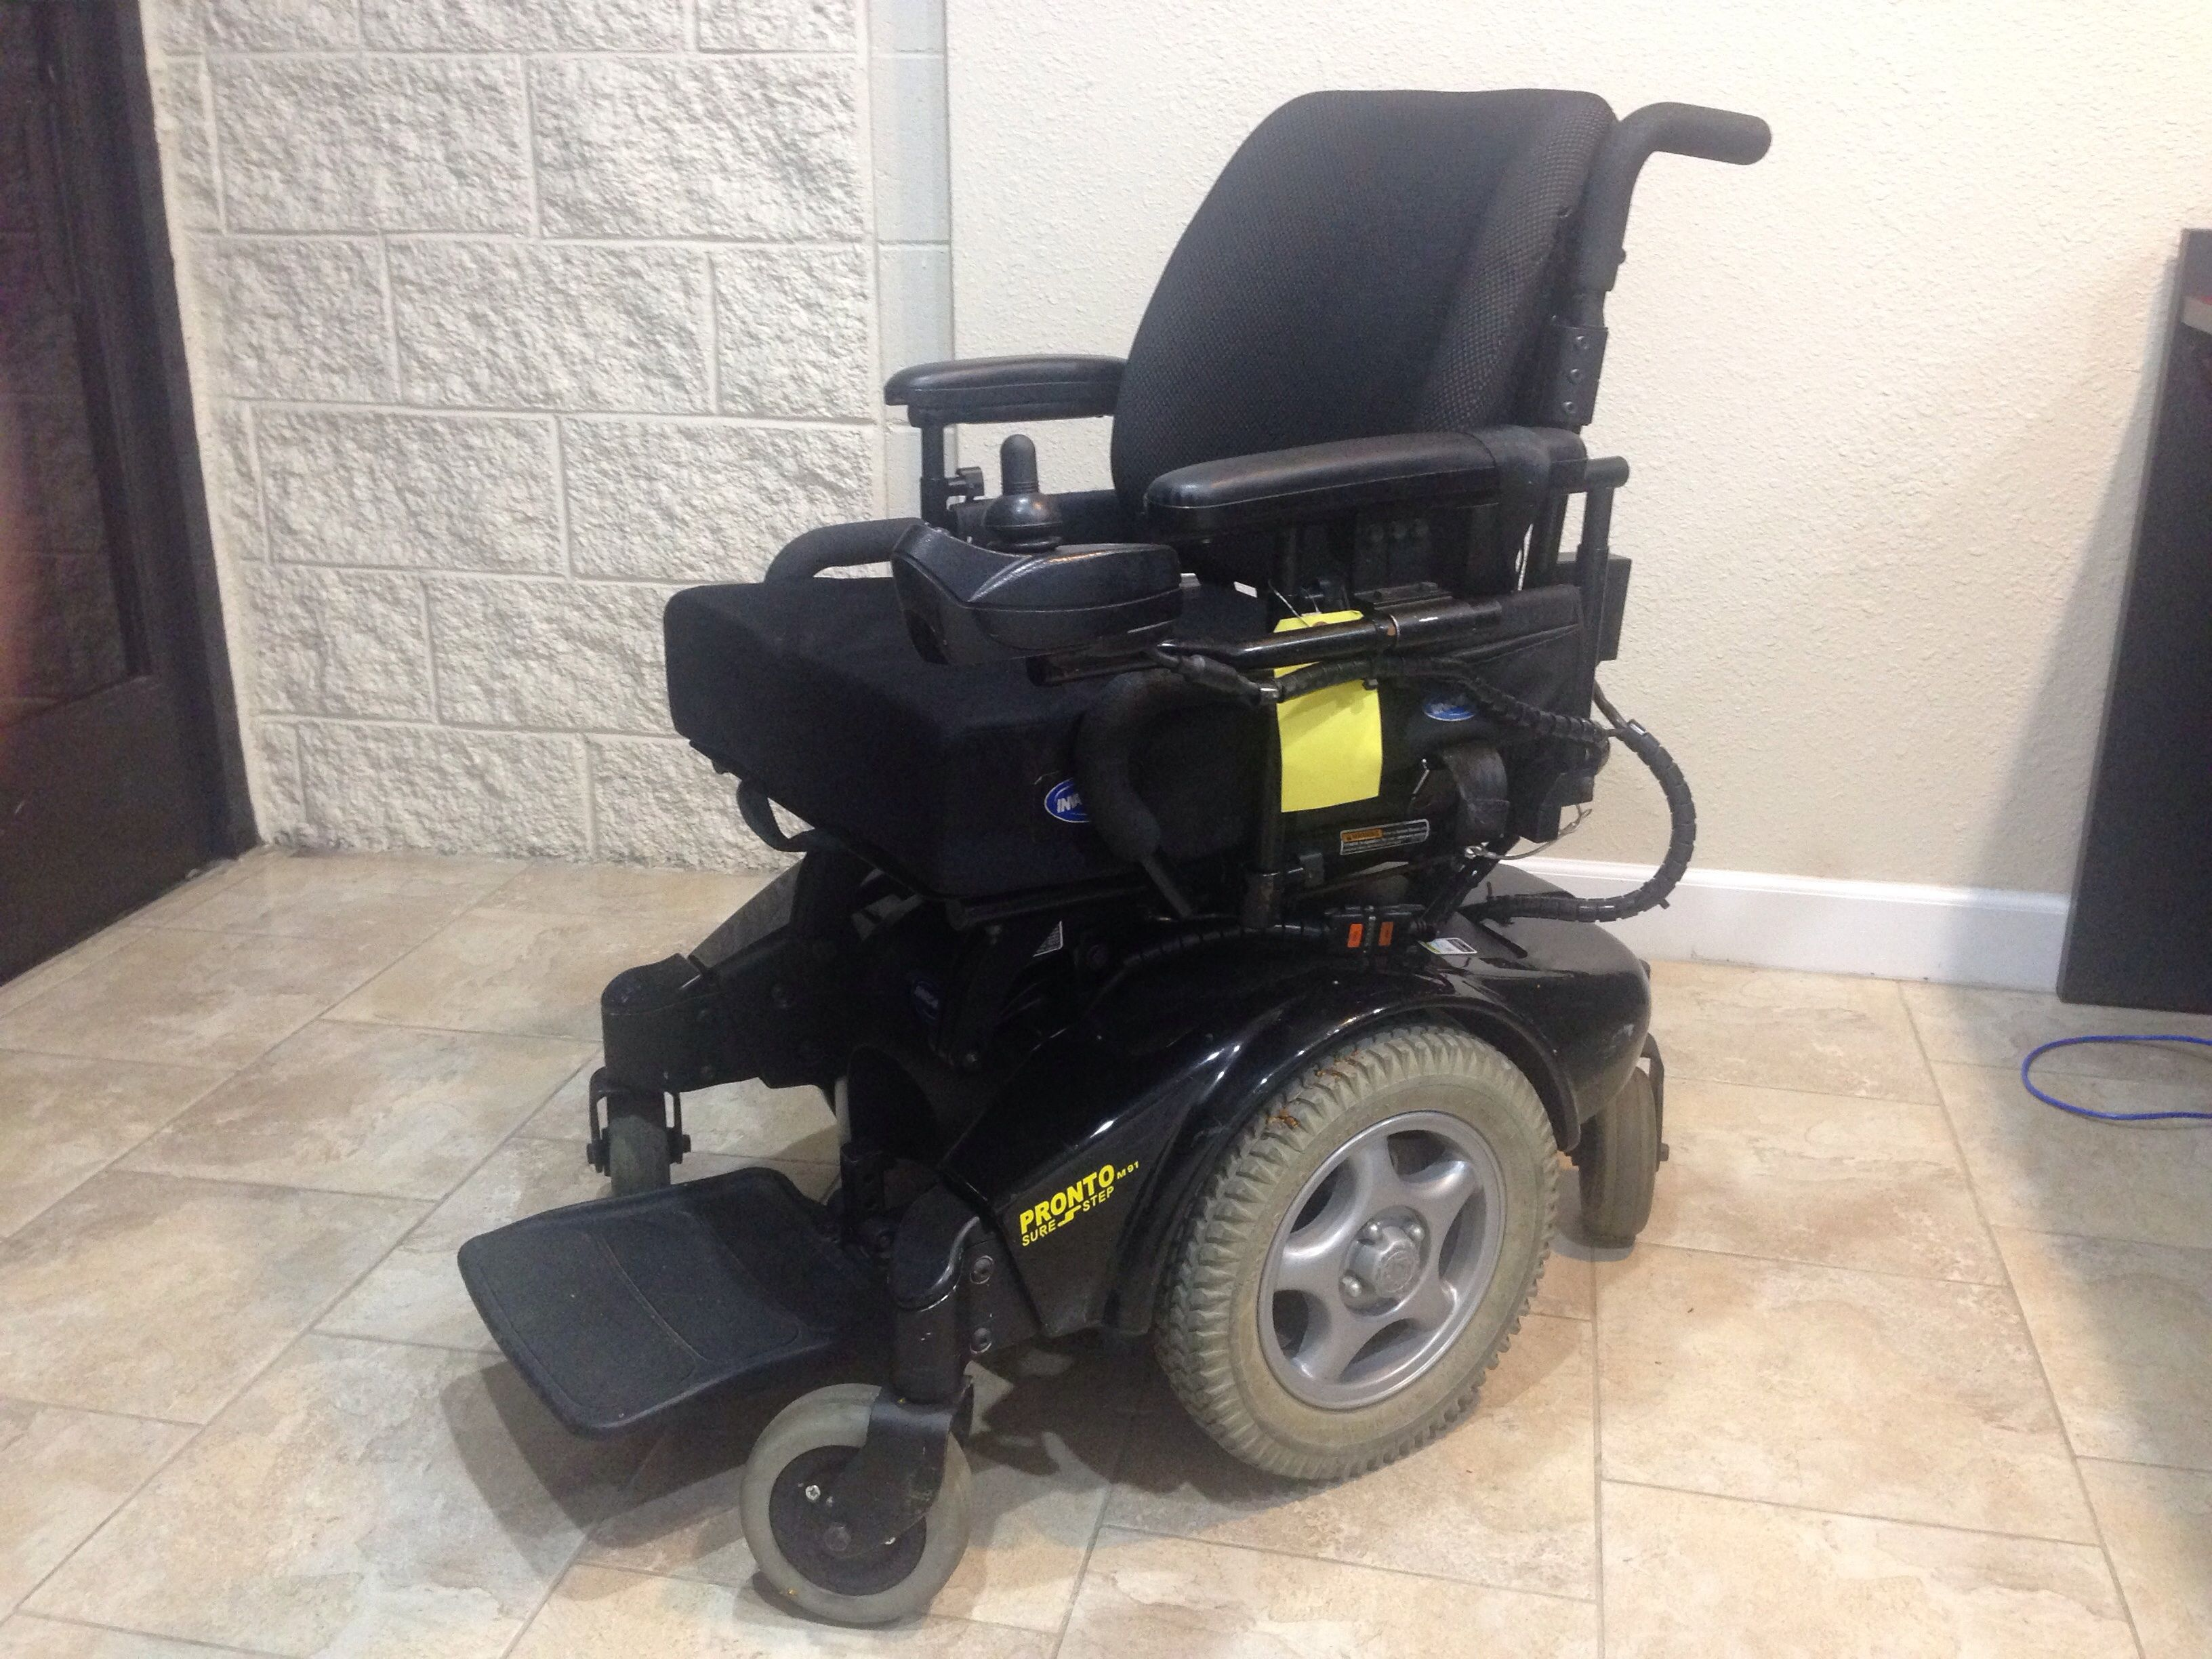 Pronto Power Chair Invacare Pronto M91 Sure Step Power Chair Https Www